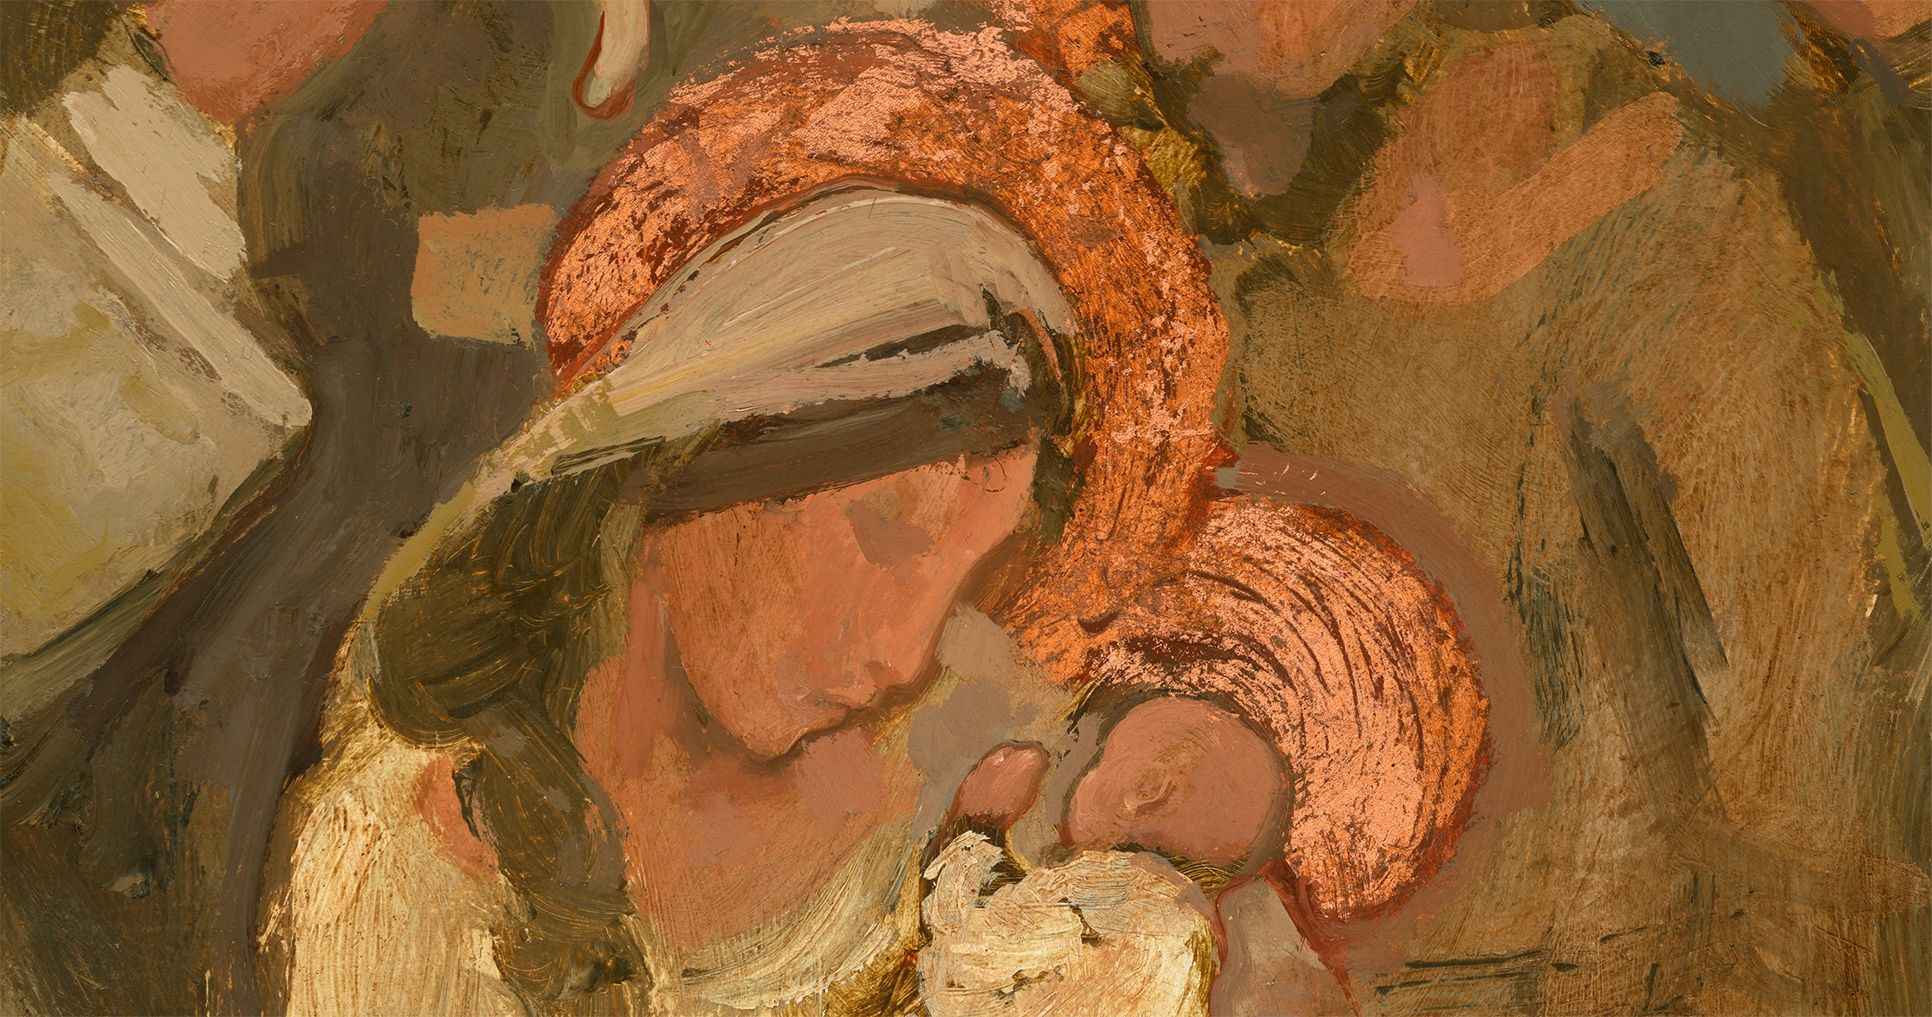 Nativity in Copper and Umber, by J. Kirk Richards. Image via Church of Jesus Christ.